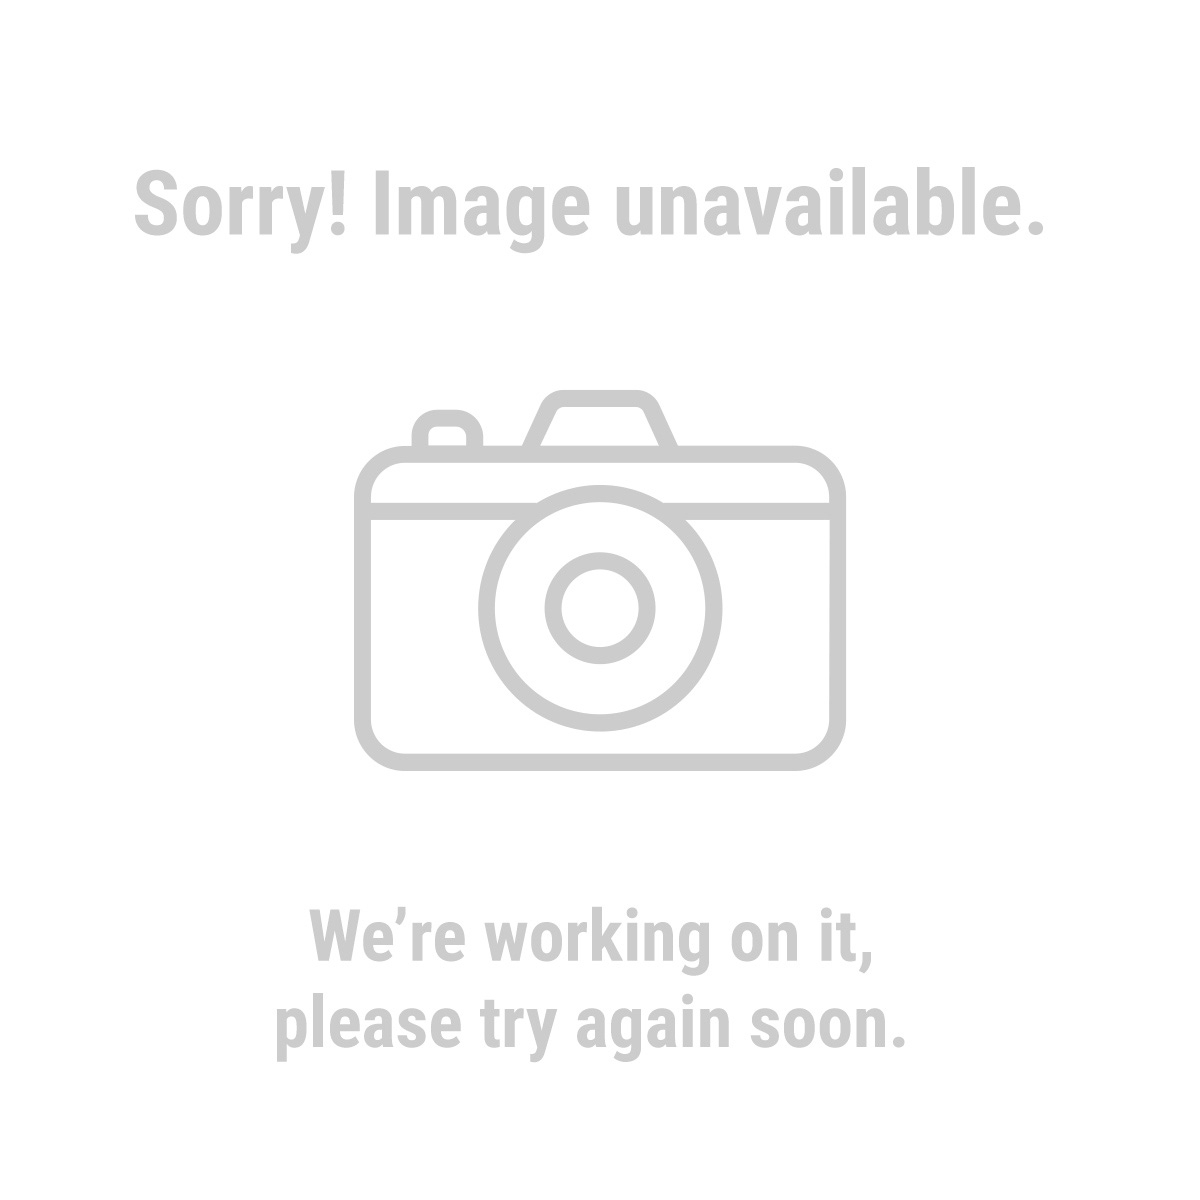 Marathon Electric 36044 7-1/2 HP Air Compressor/General Purpose Motor